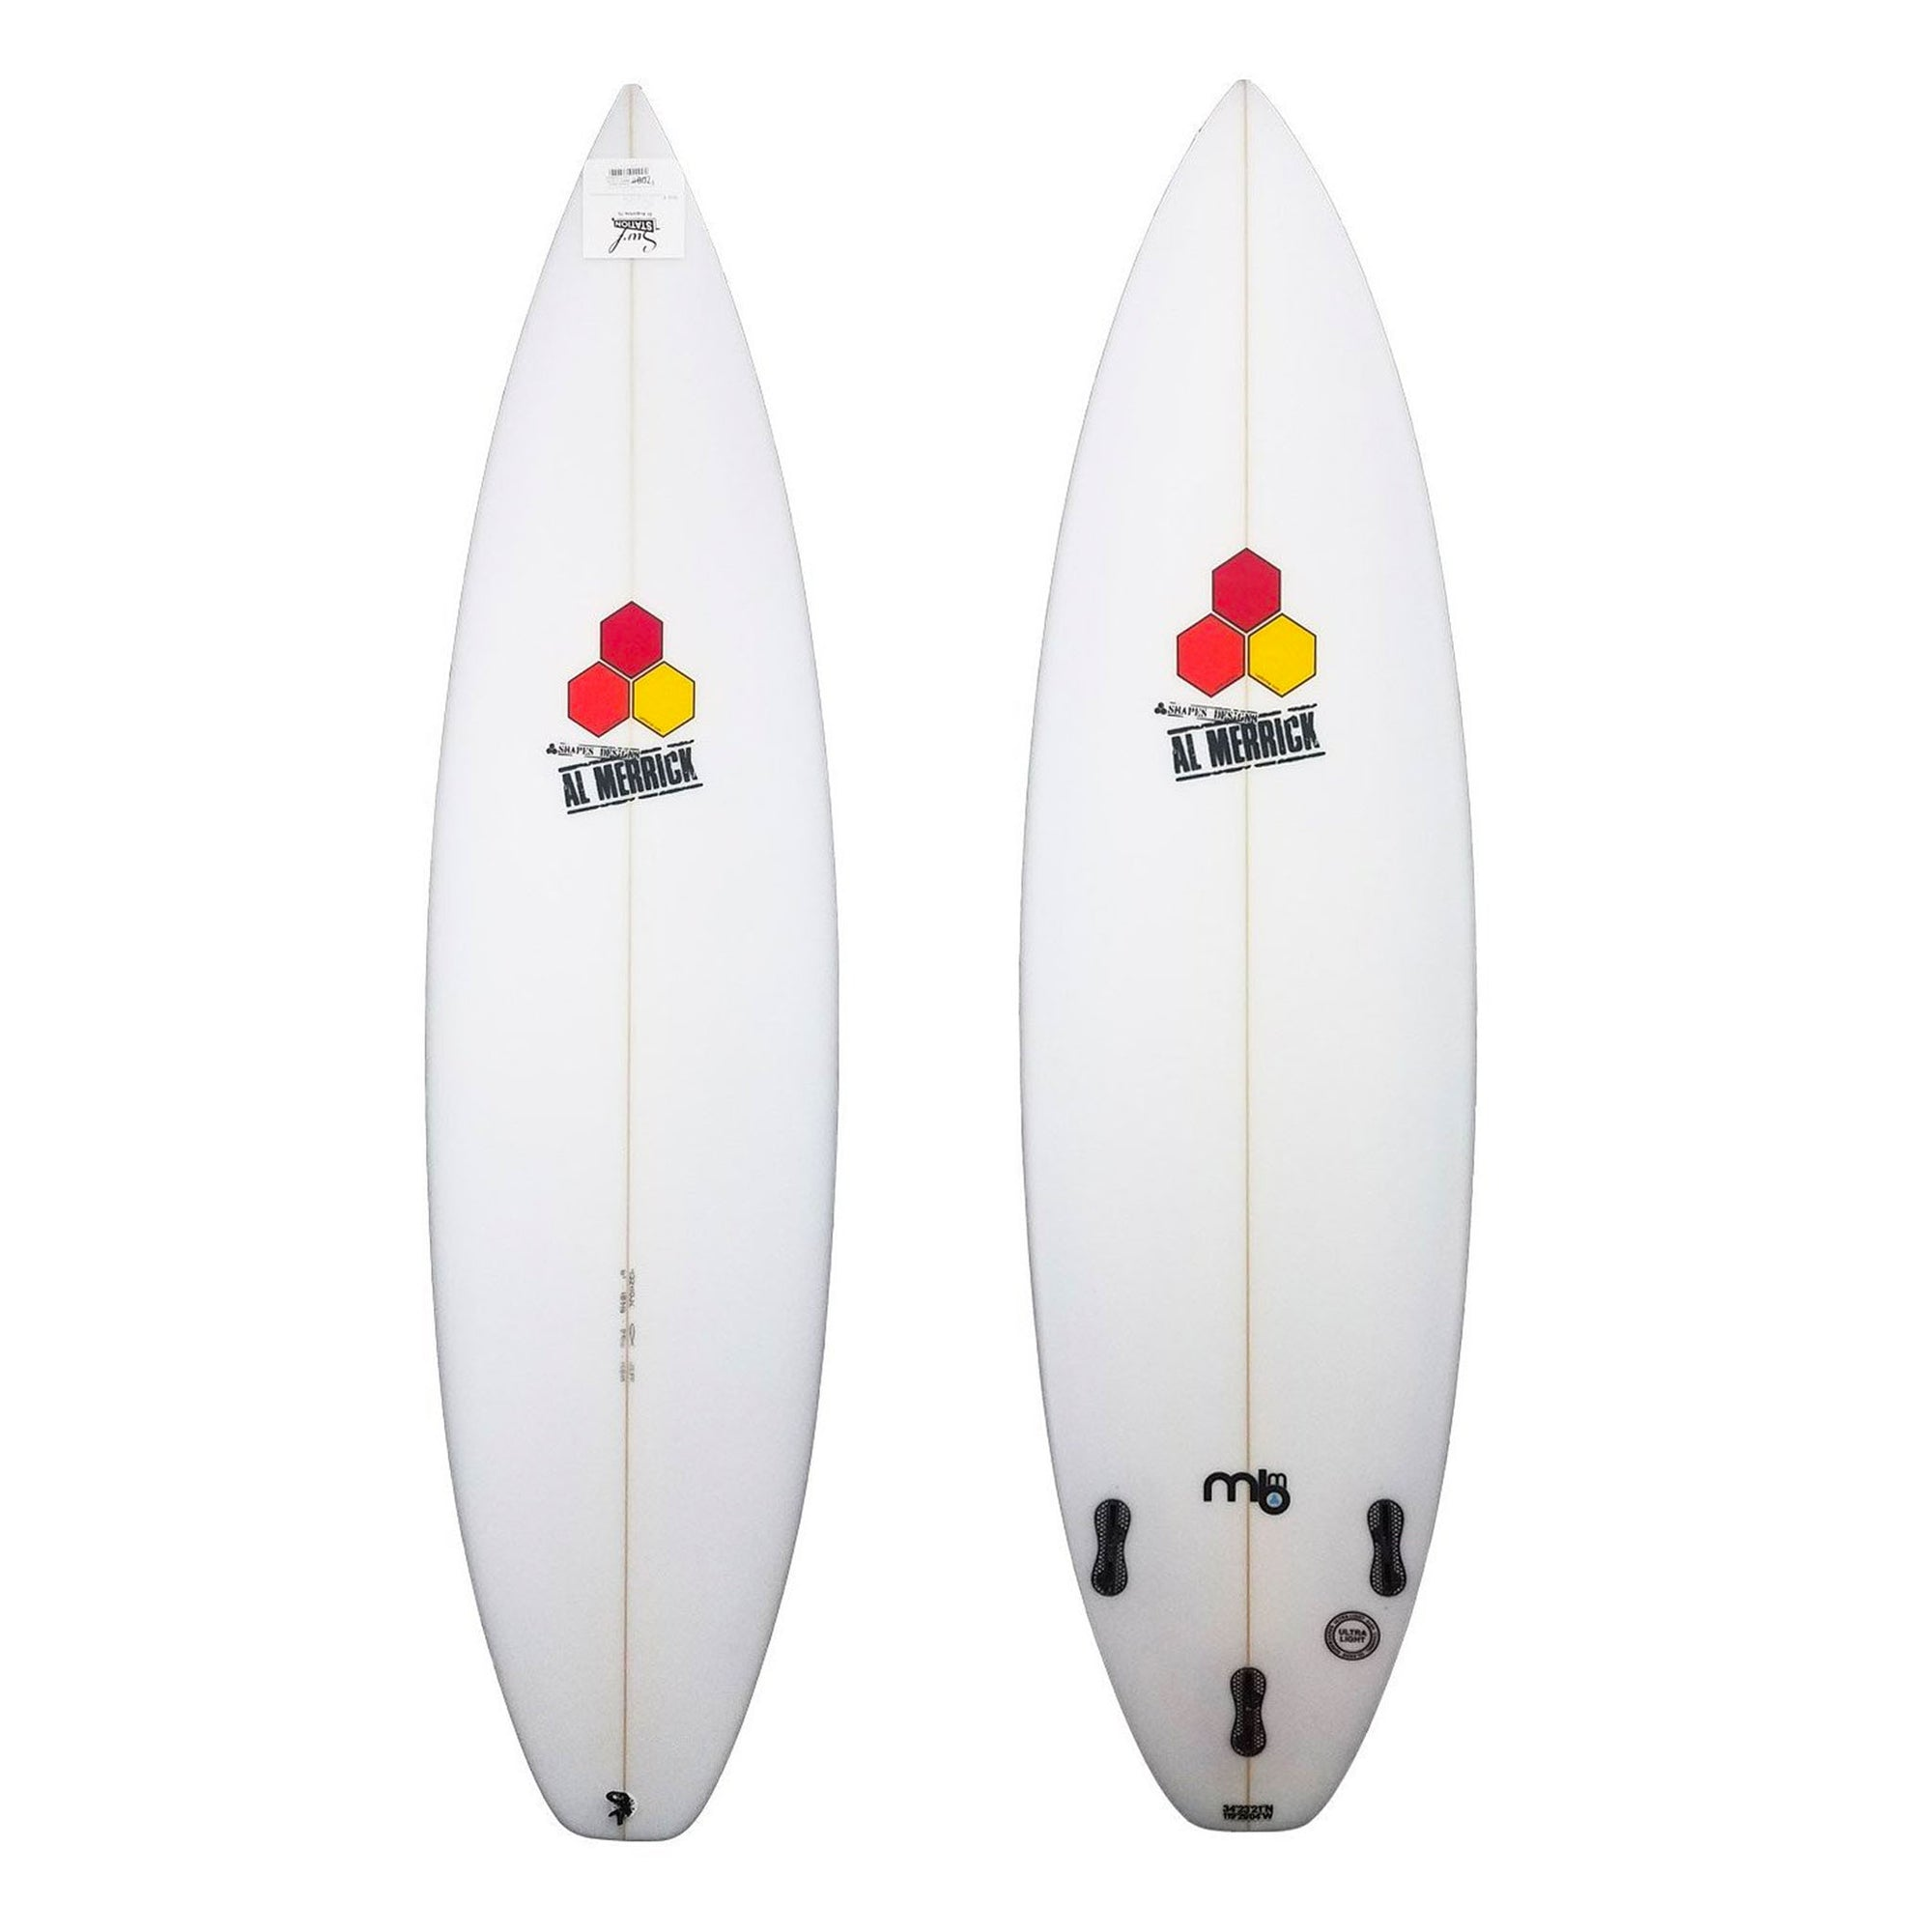 Channel Islands MBM Surfboard